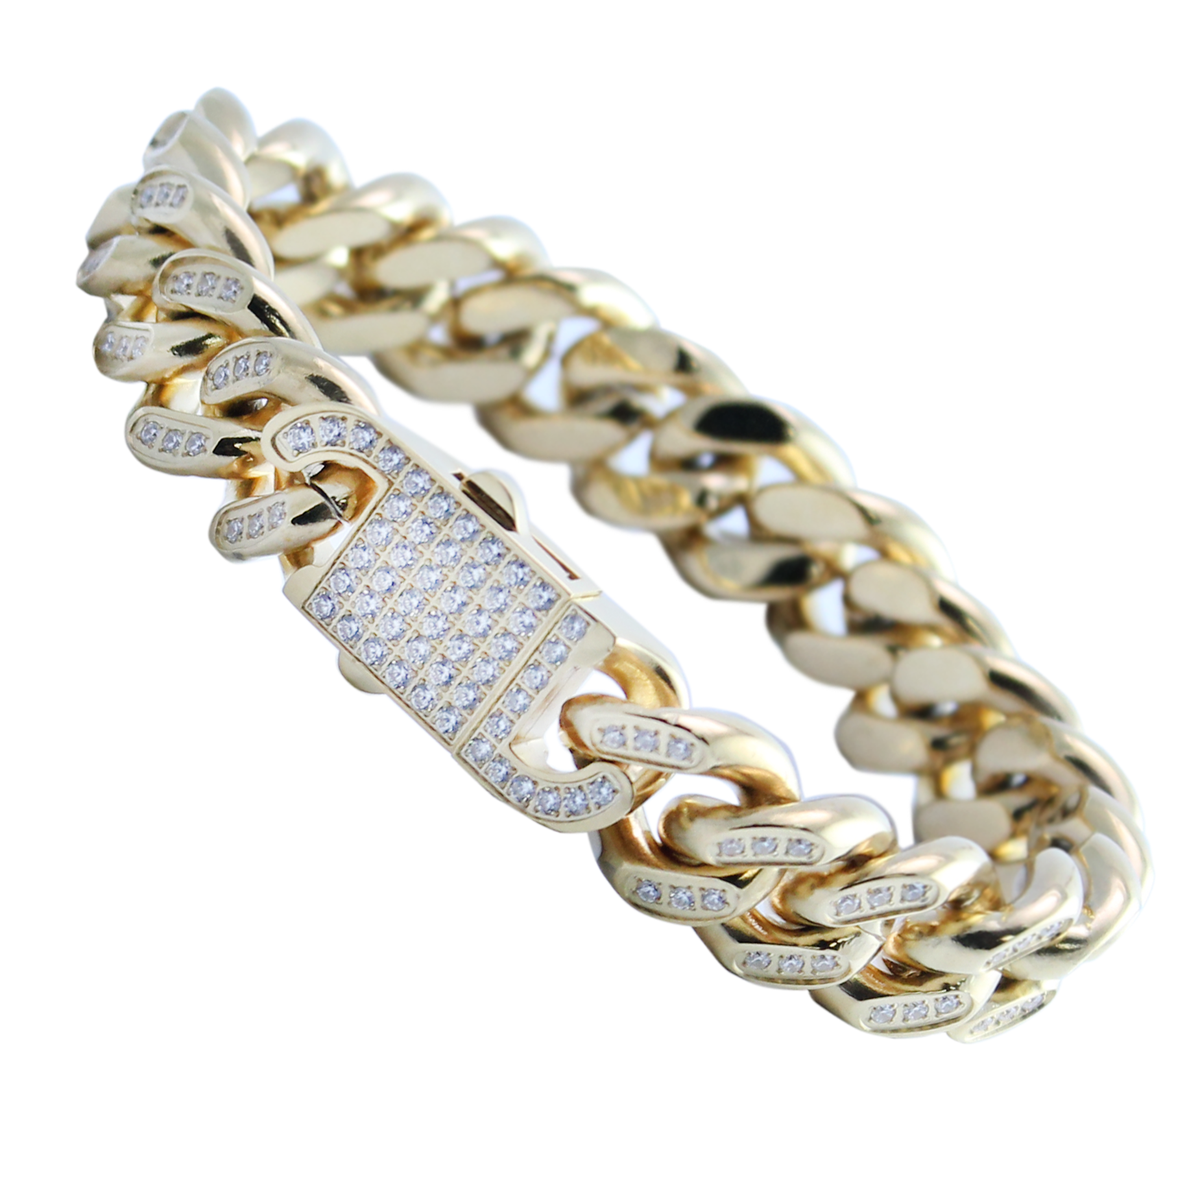 Gold PVD Stainless Steel Cuban Link CZ Stone Encrusted Bracelet